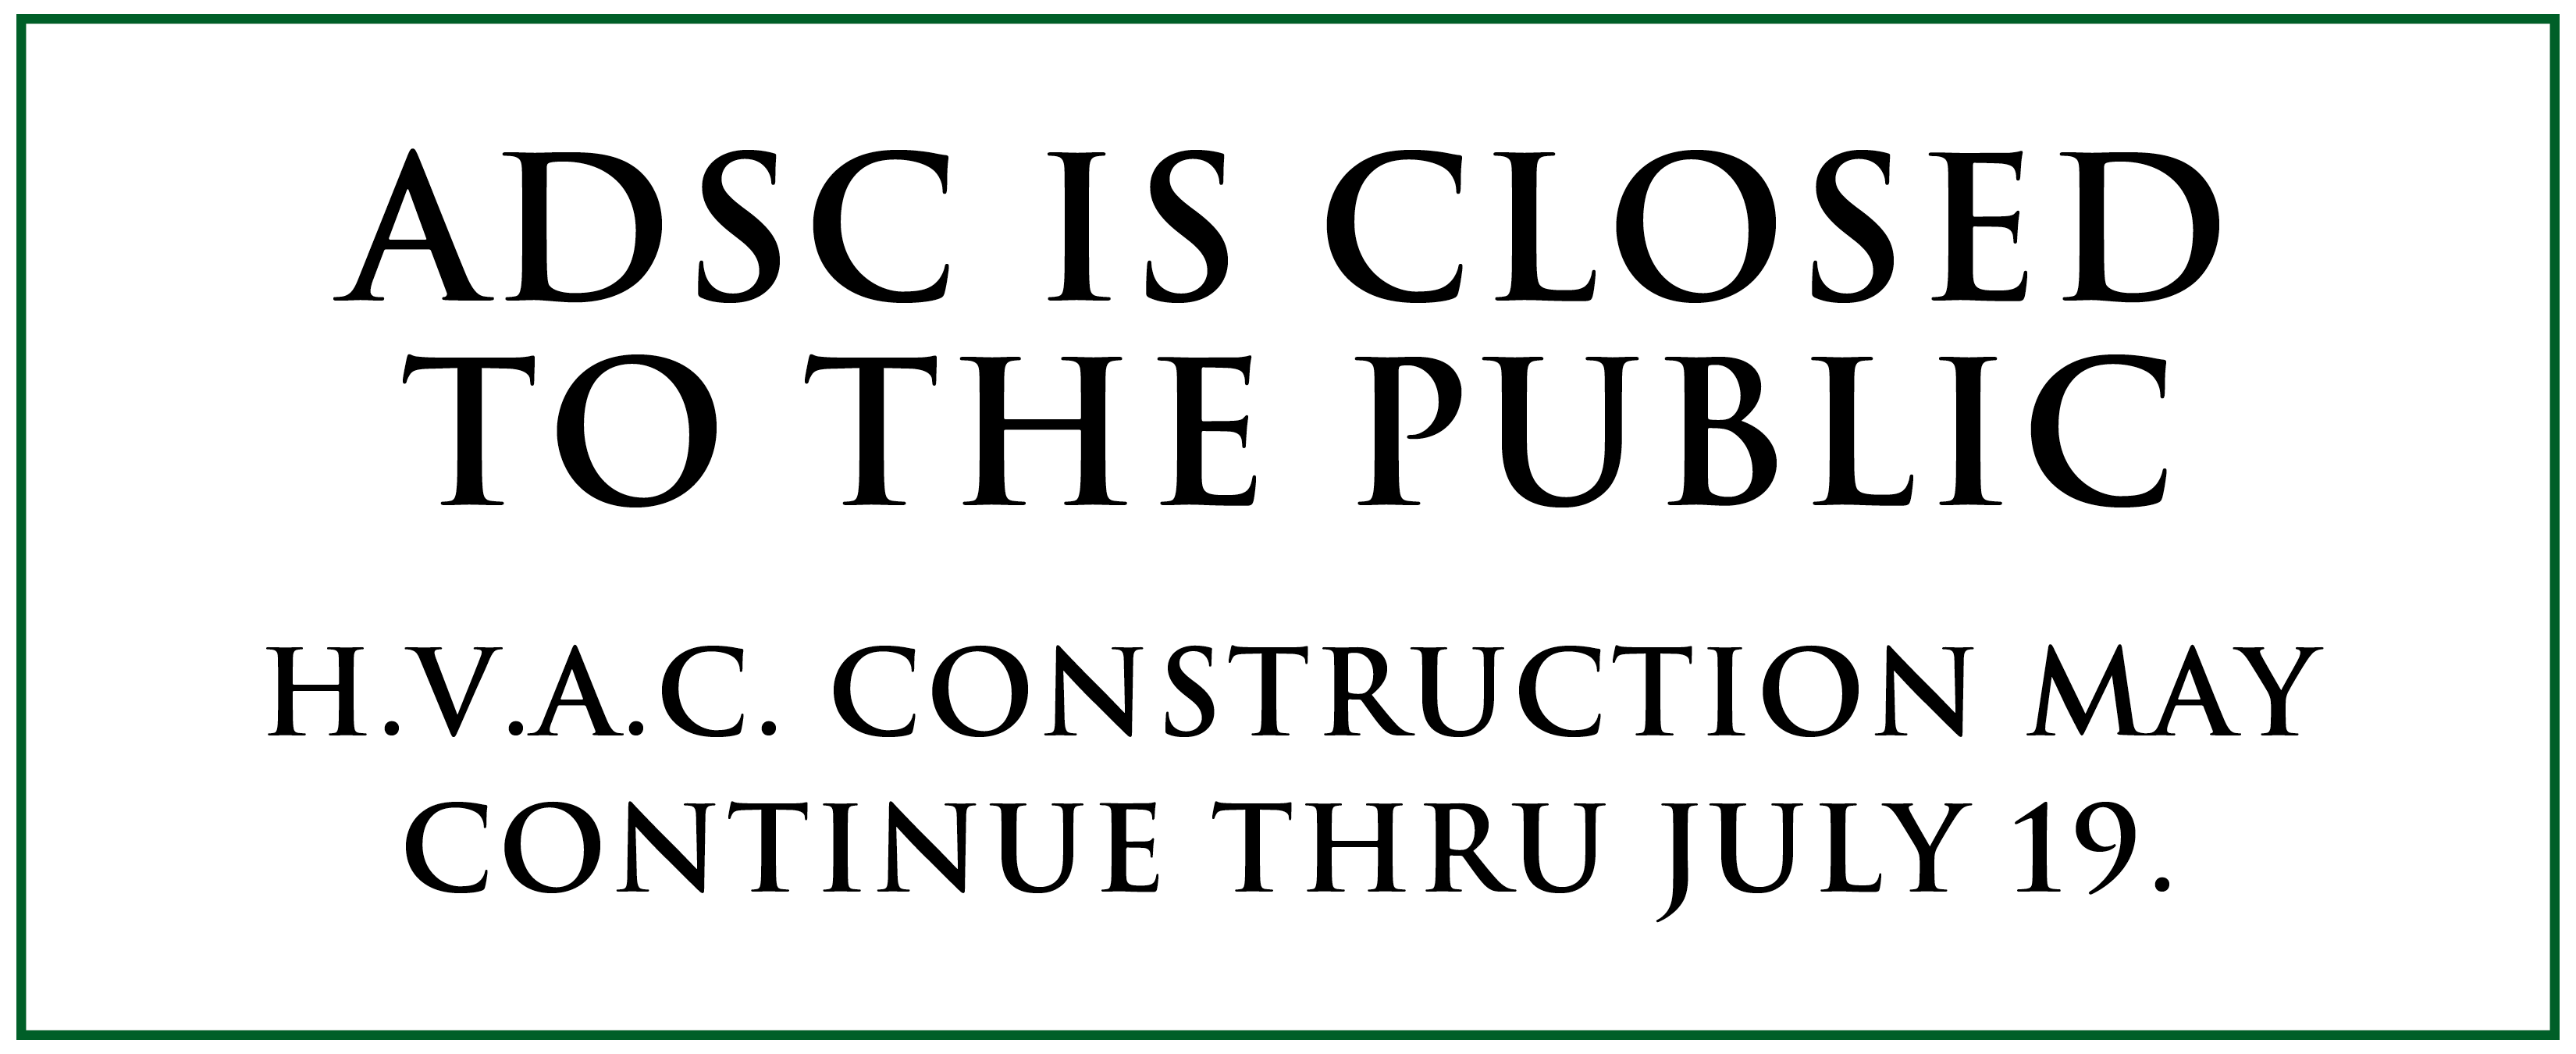 ADSC is closed until July 13.